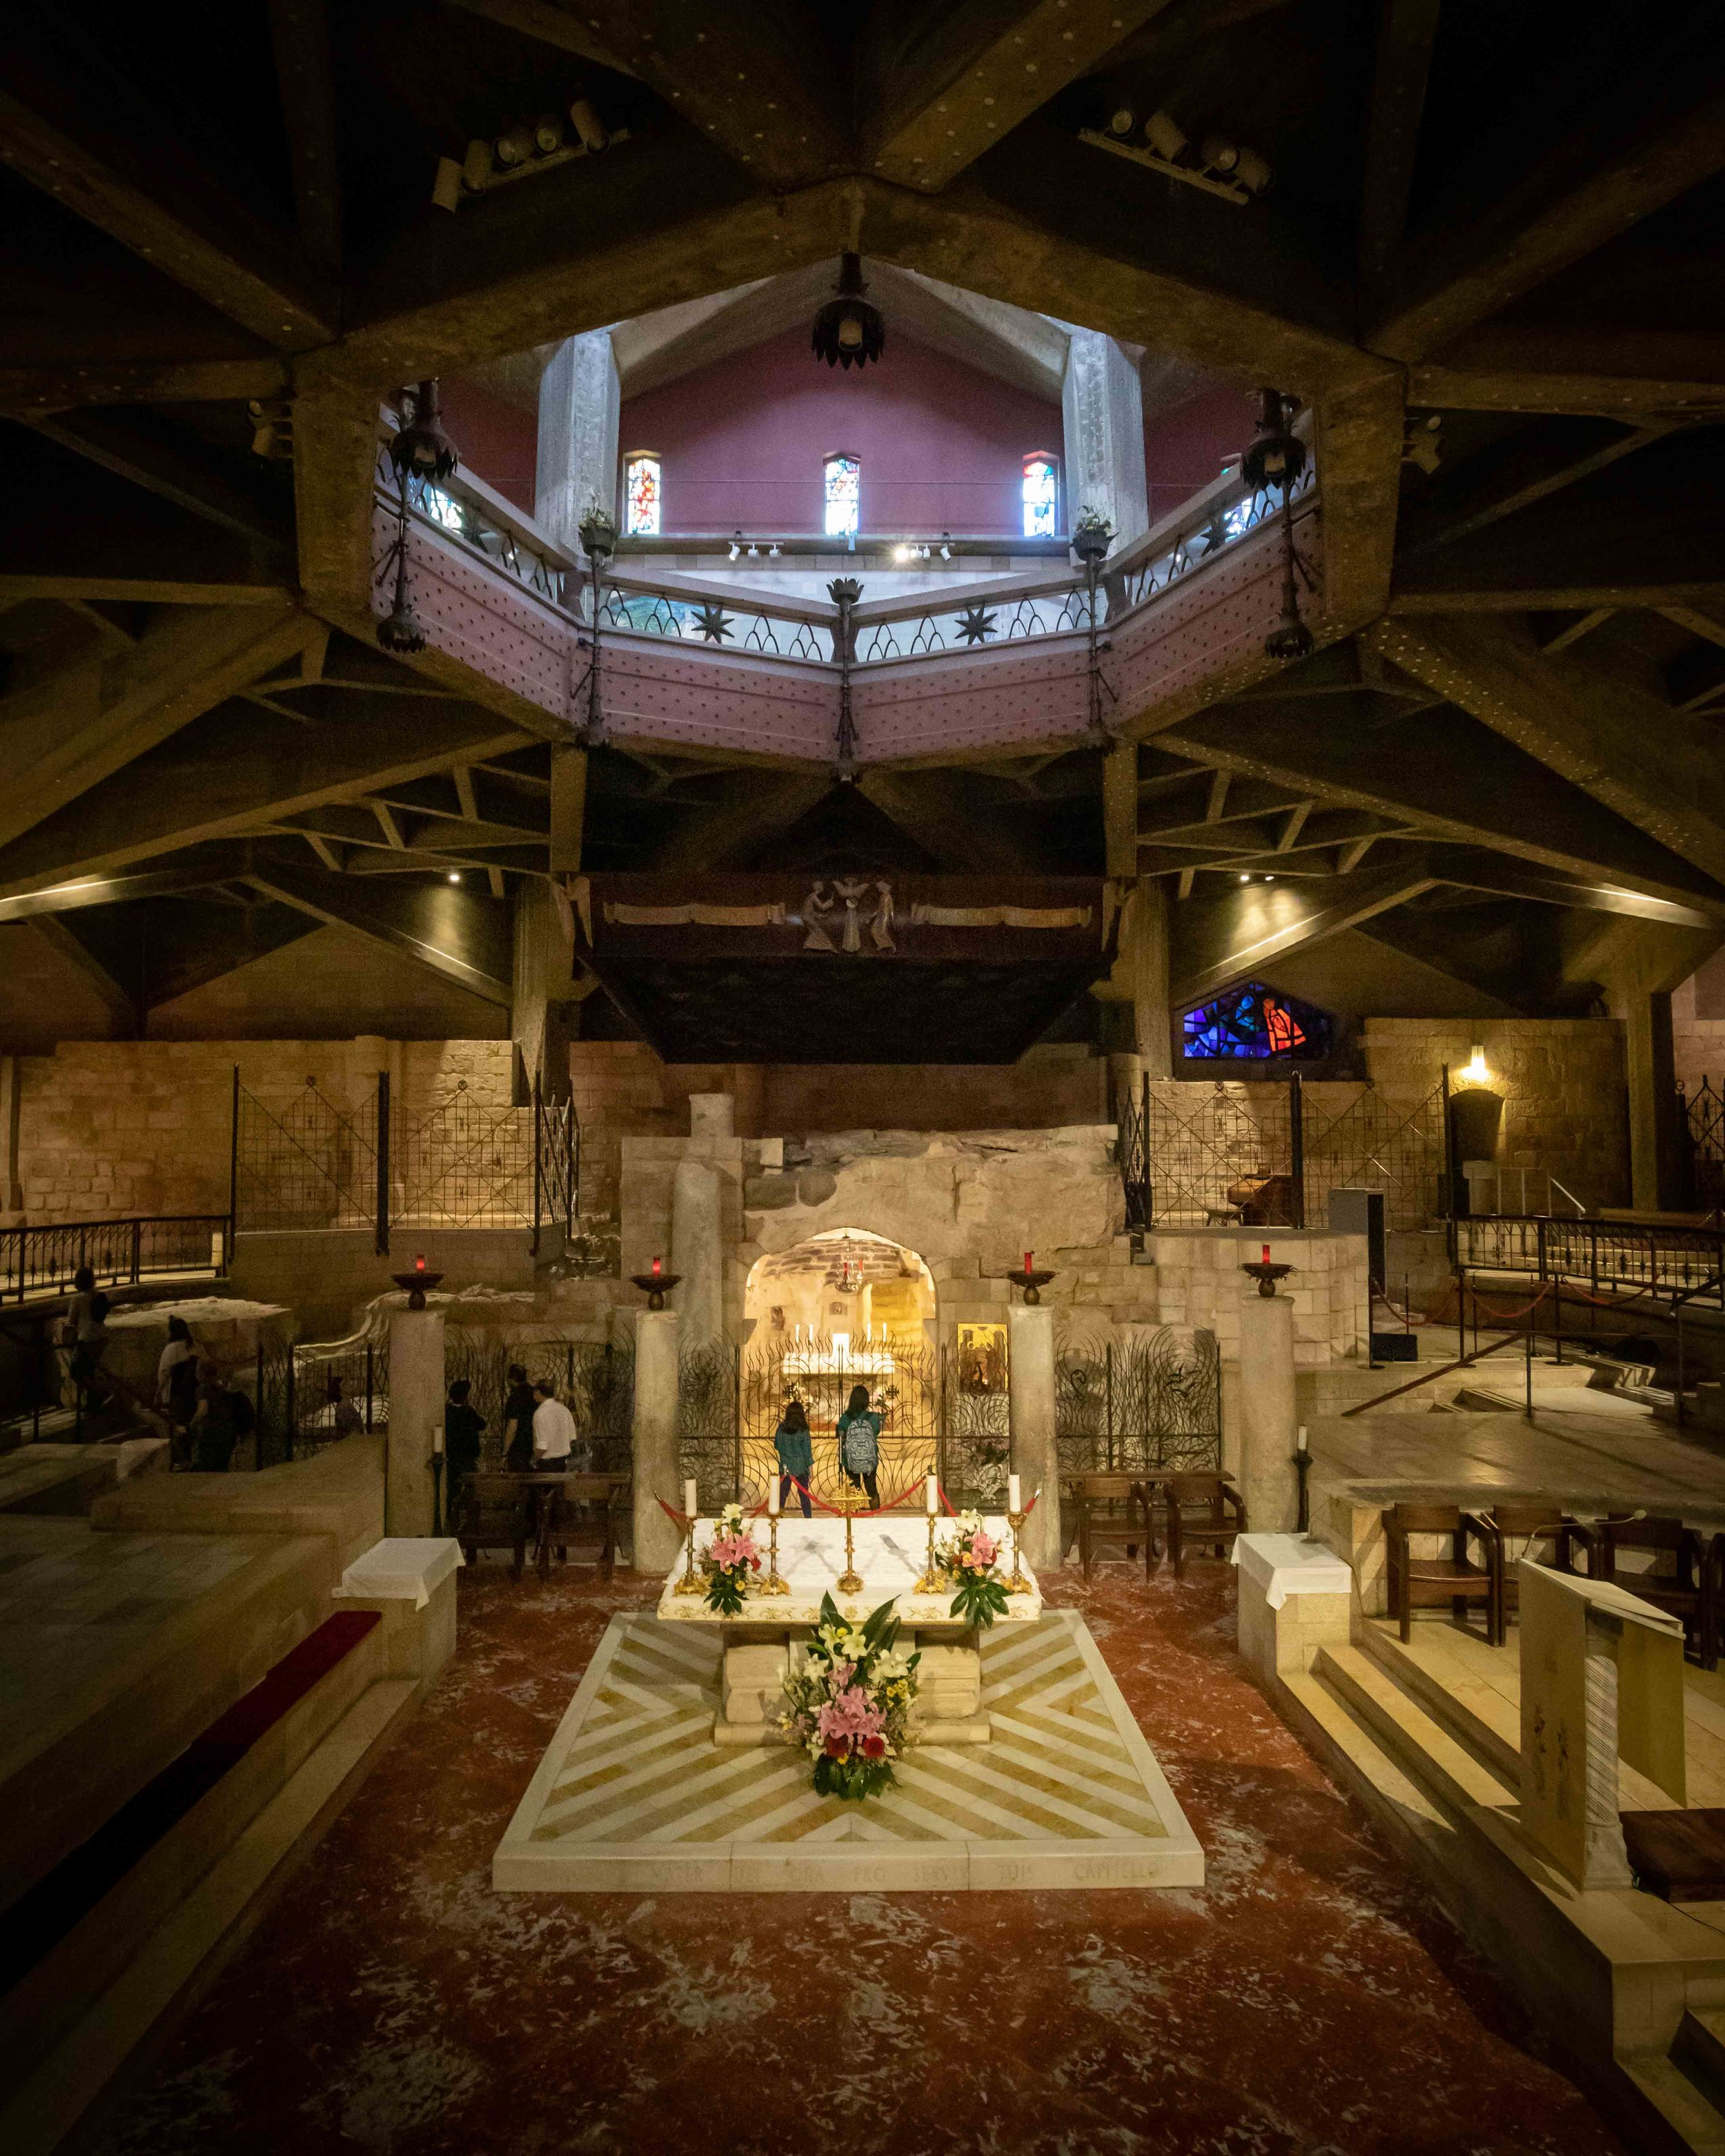 Places to visit in Israel - Church of Annunciation in Nazareth